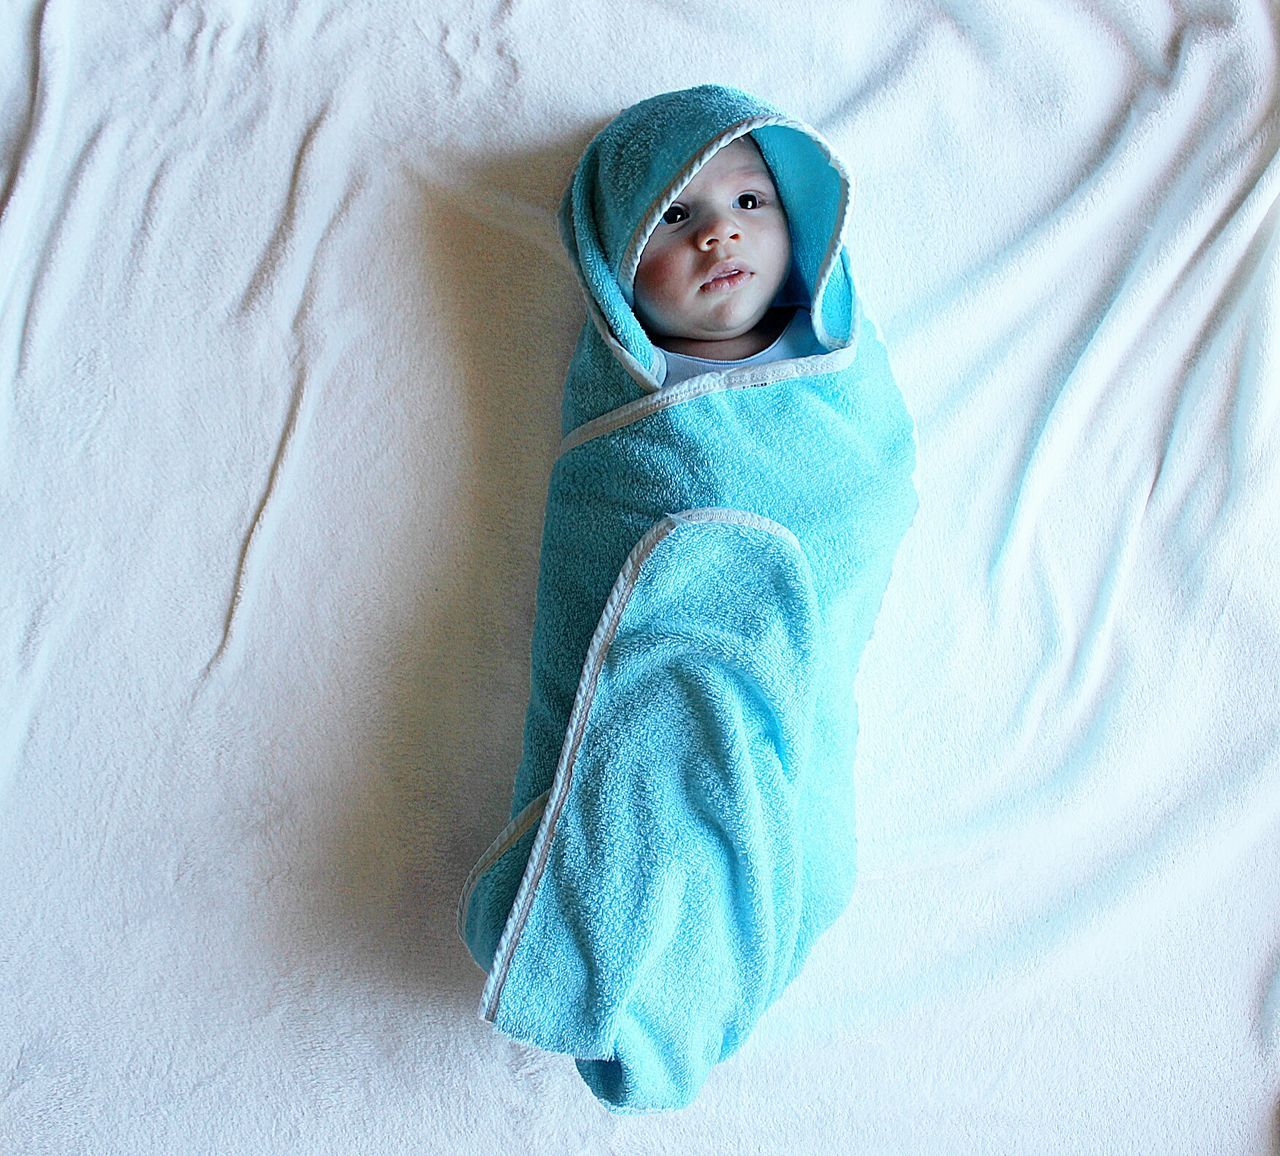 baby, high angle view, blanket, babies only, one person, childhood, indoors, cute, bed, portrait, full length, blue, real people, people, day, close-up